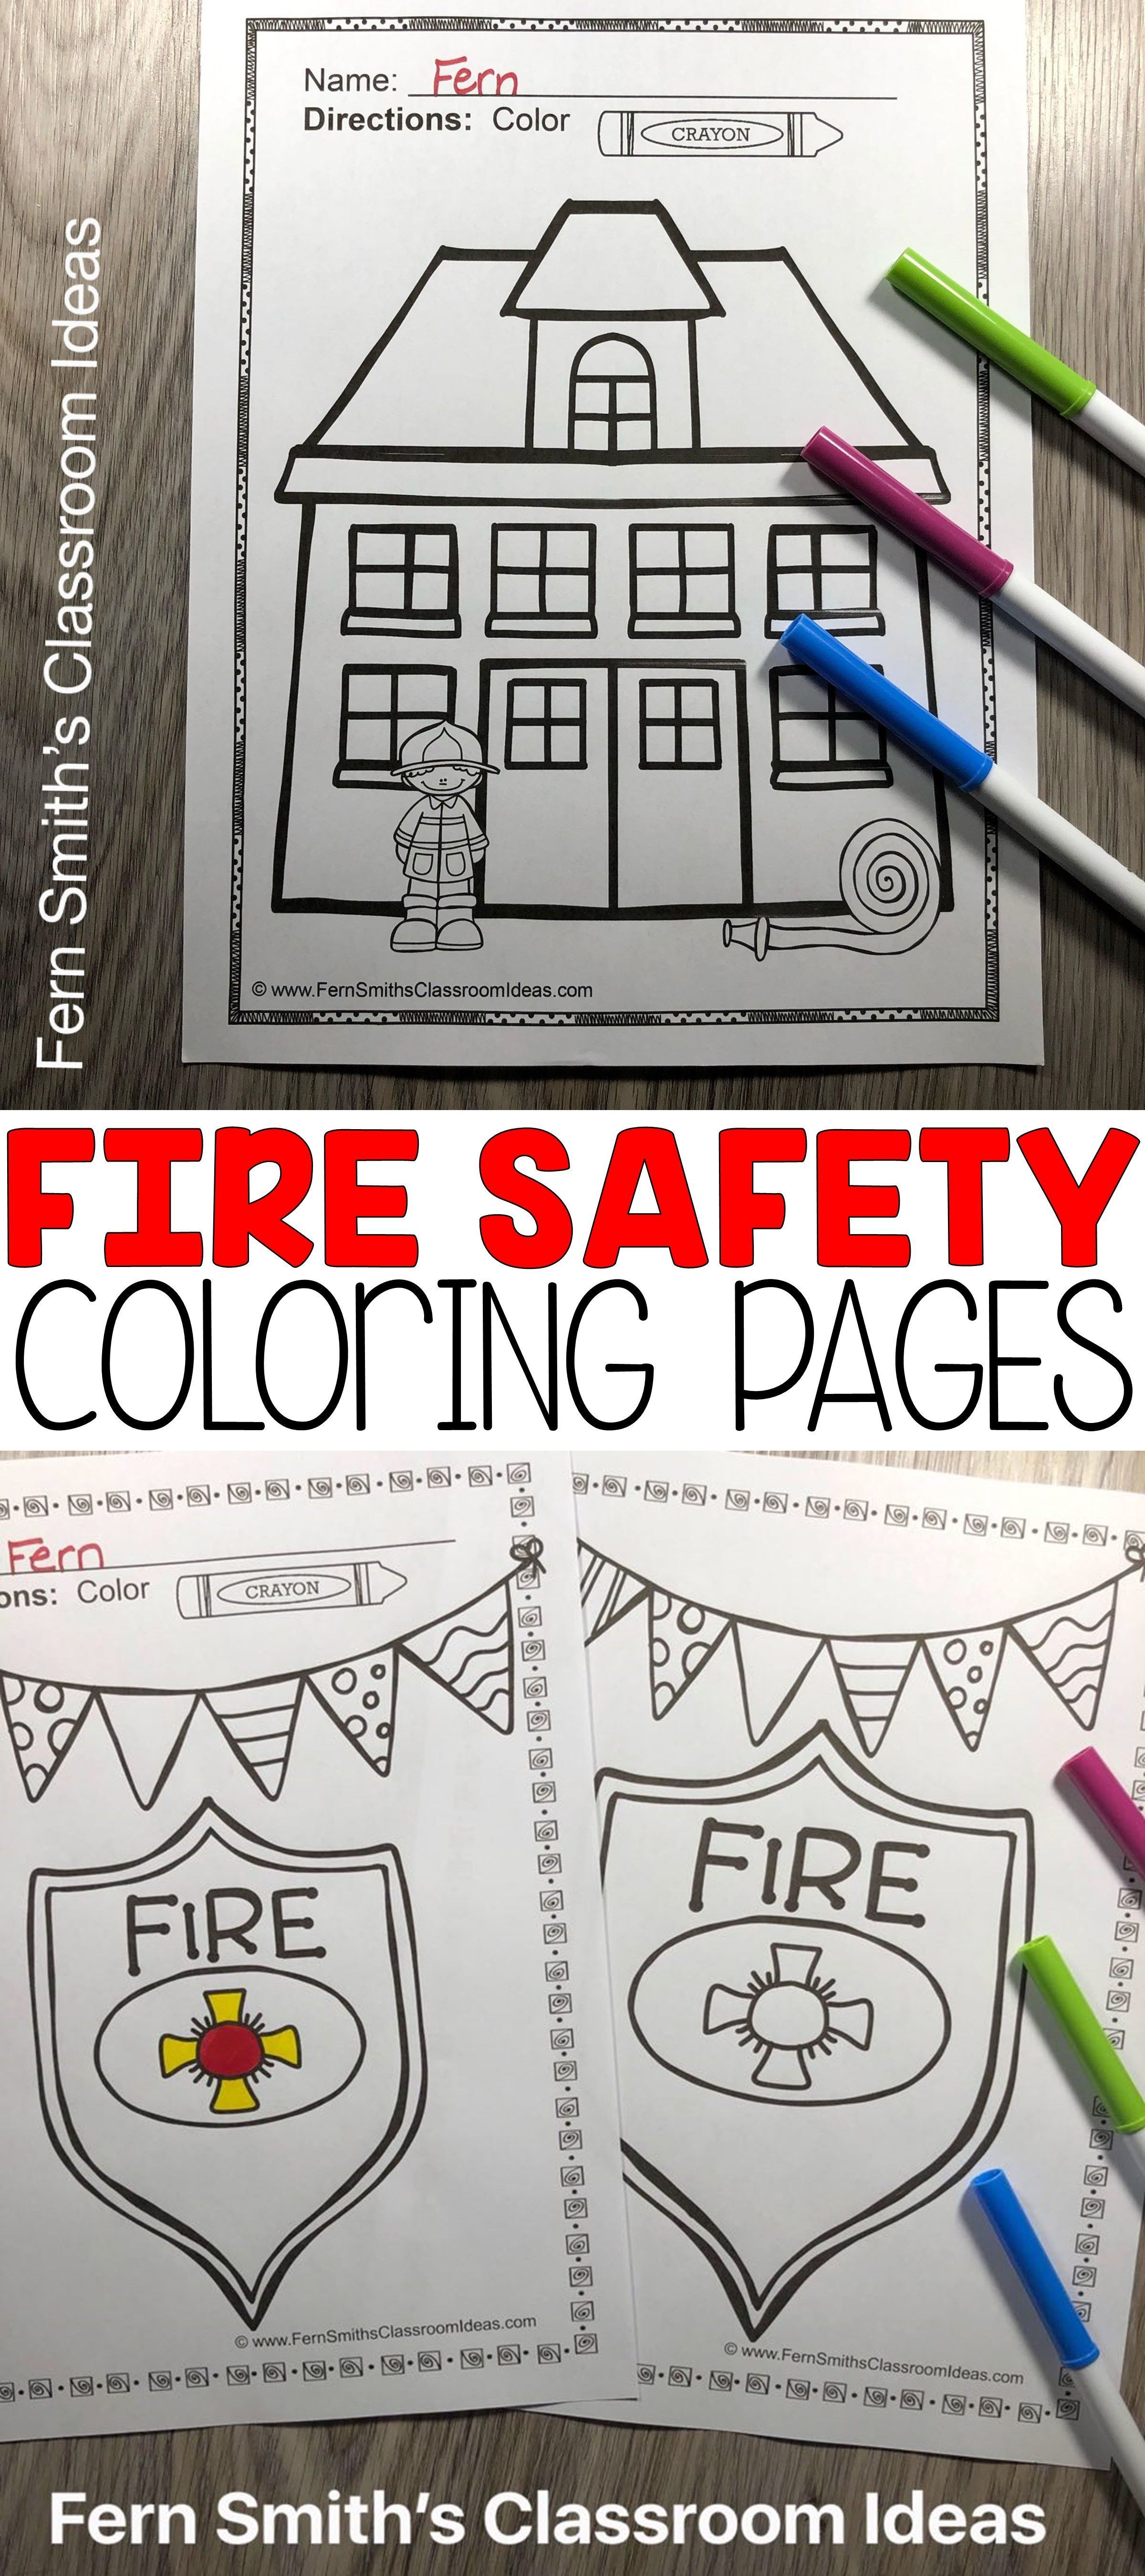 22+ Fire Safety Week 2020 Coloring Pages